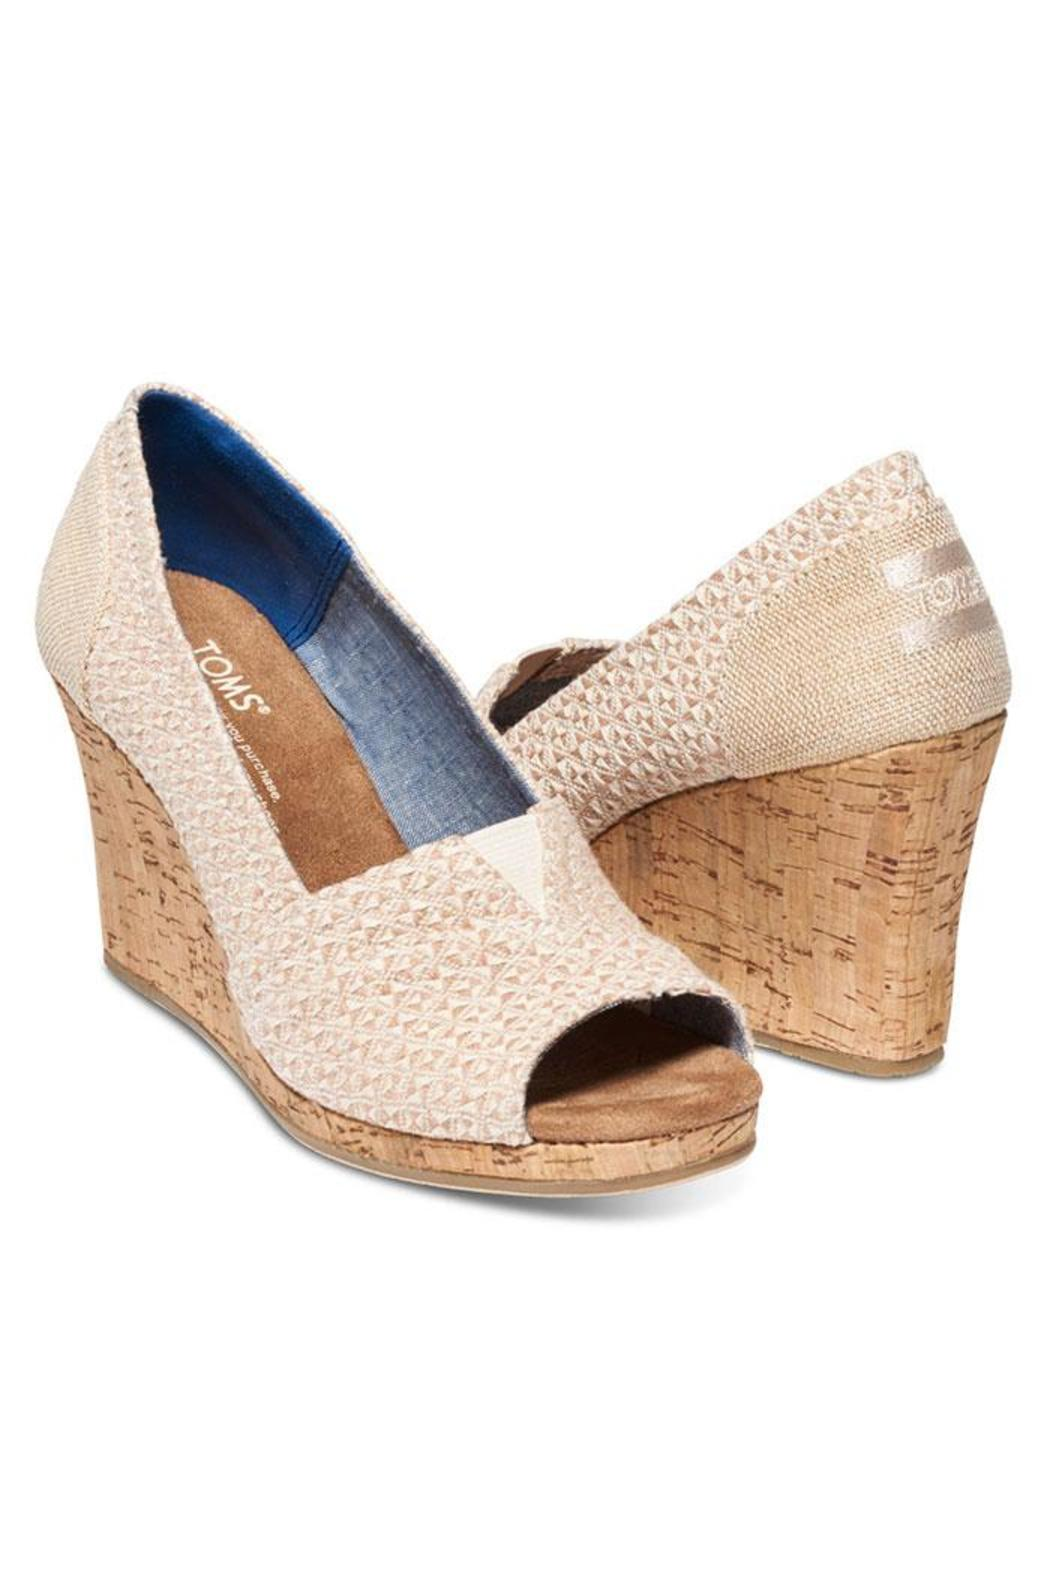 TOMS Printed Cork Wedge - Front Full Image